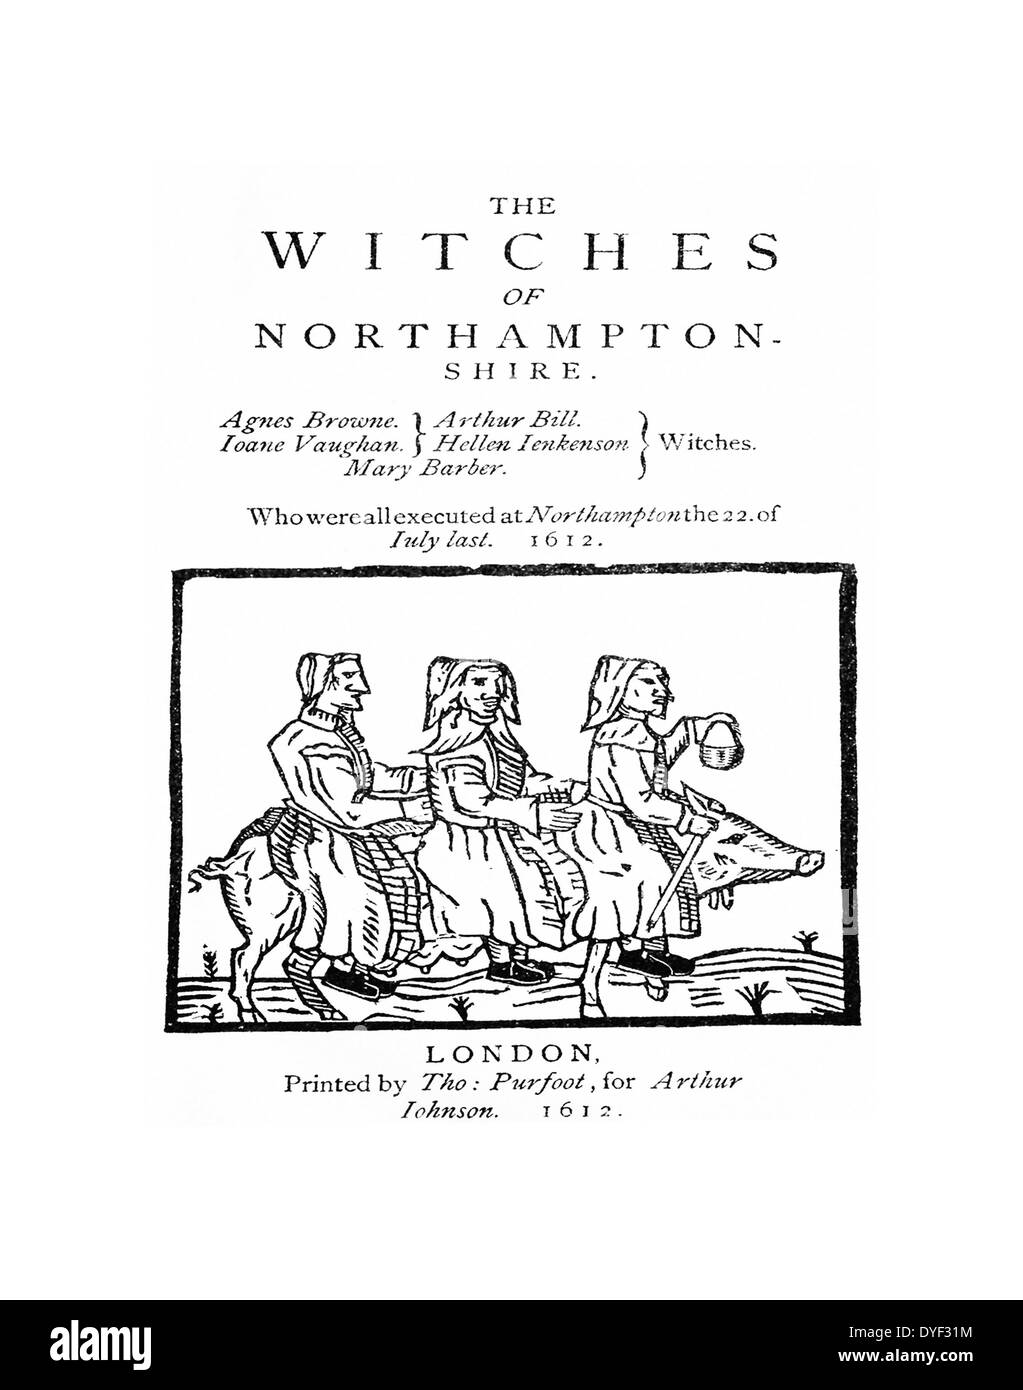 Cover of the pamphlet The Witches of Northampton - Stock Image